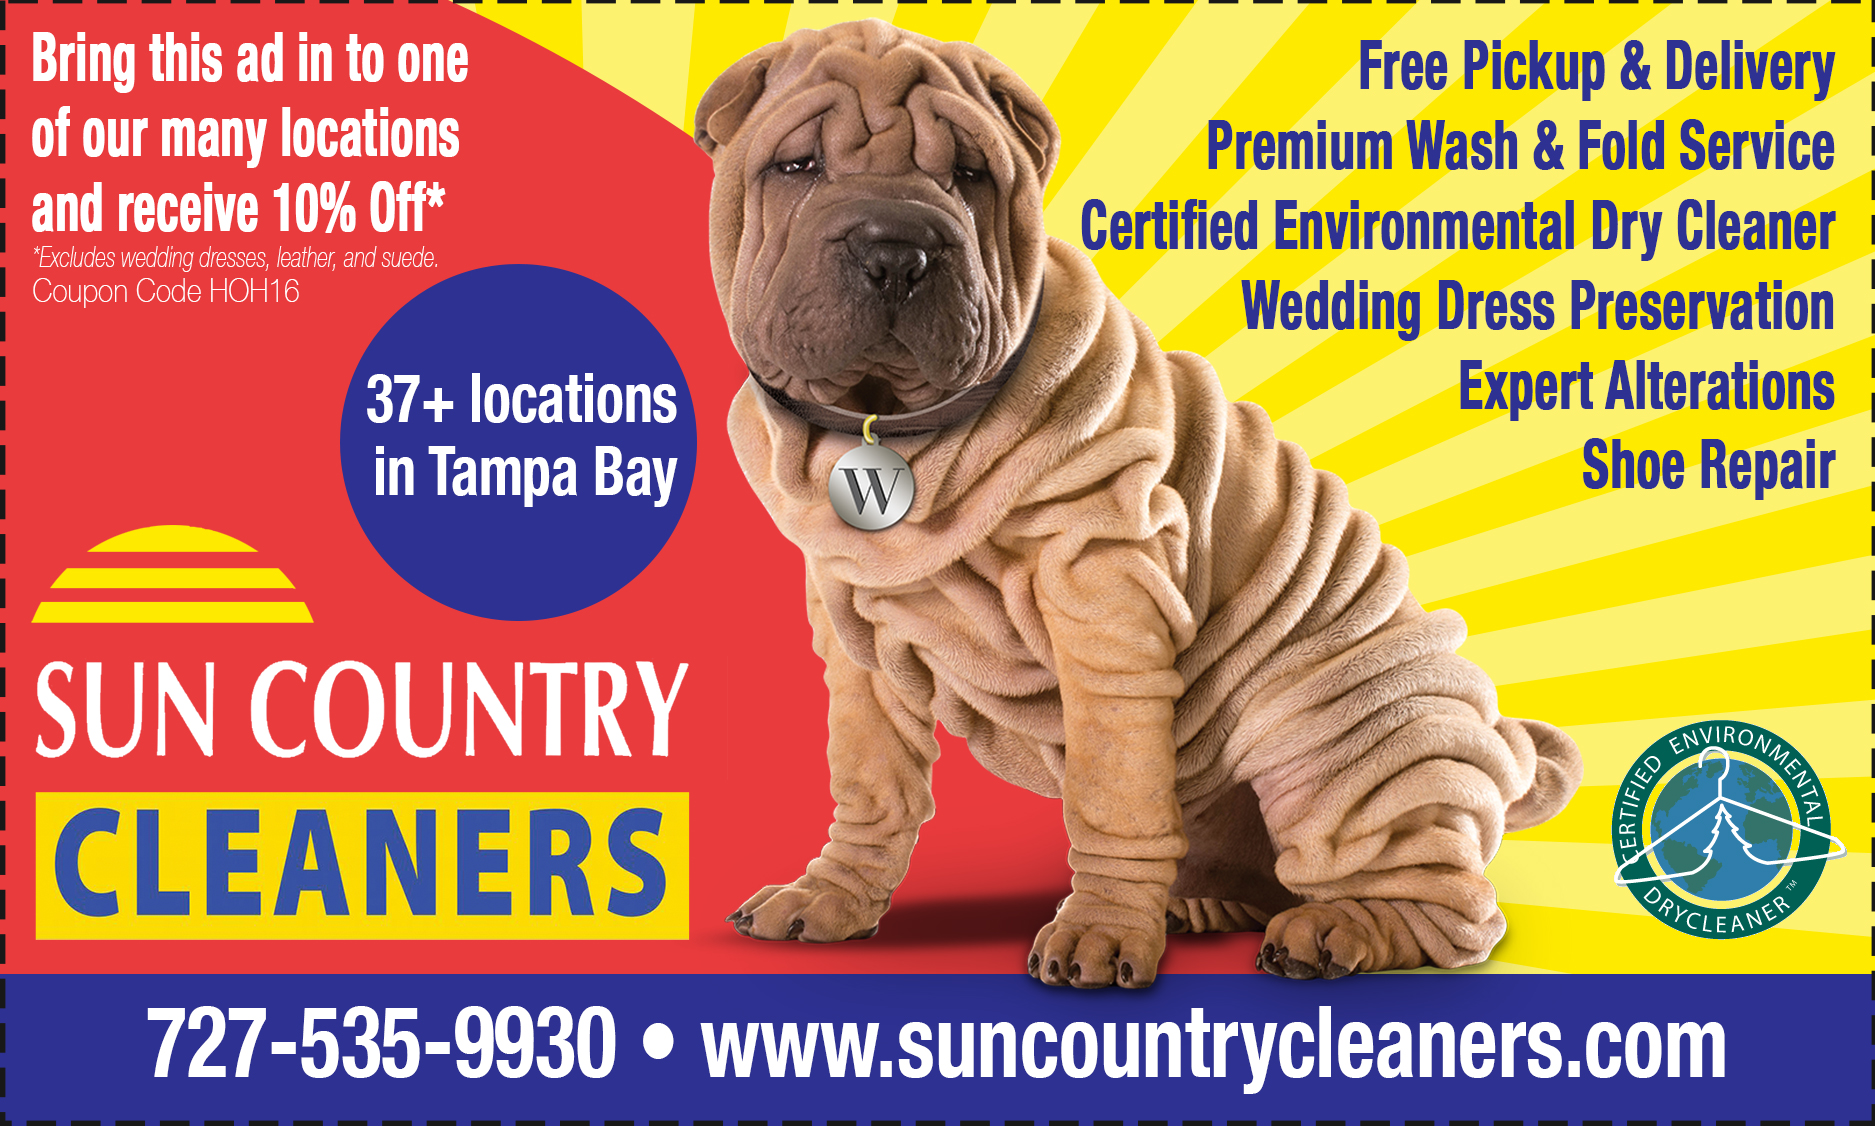 Sun Country Cleaners